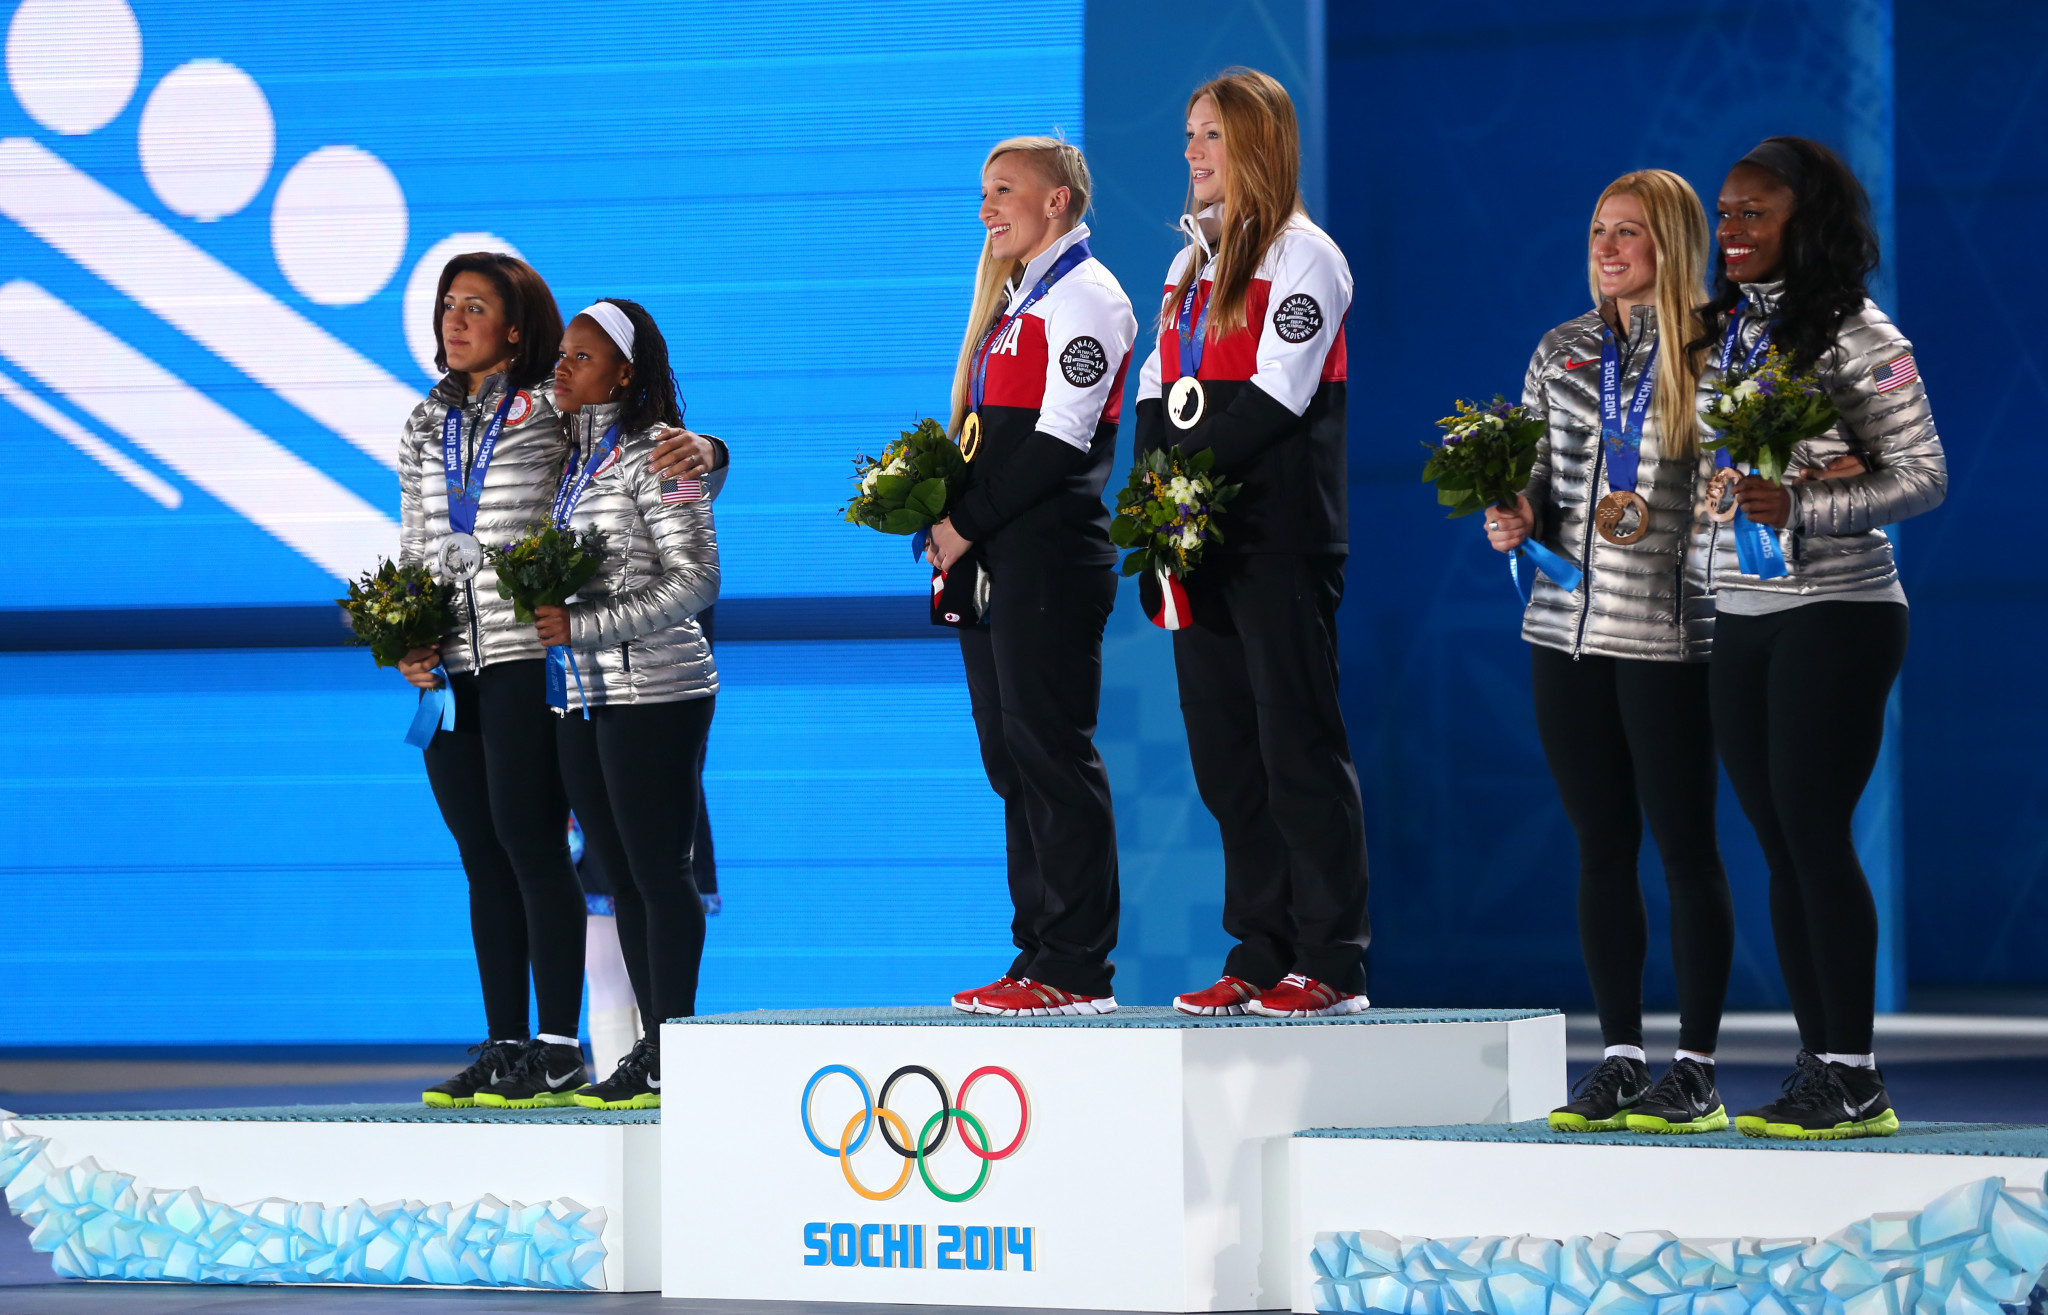 Canadian athletes are set to sing a gender neutral version of their national anthem ©Getty Images